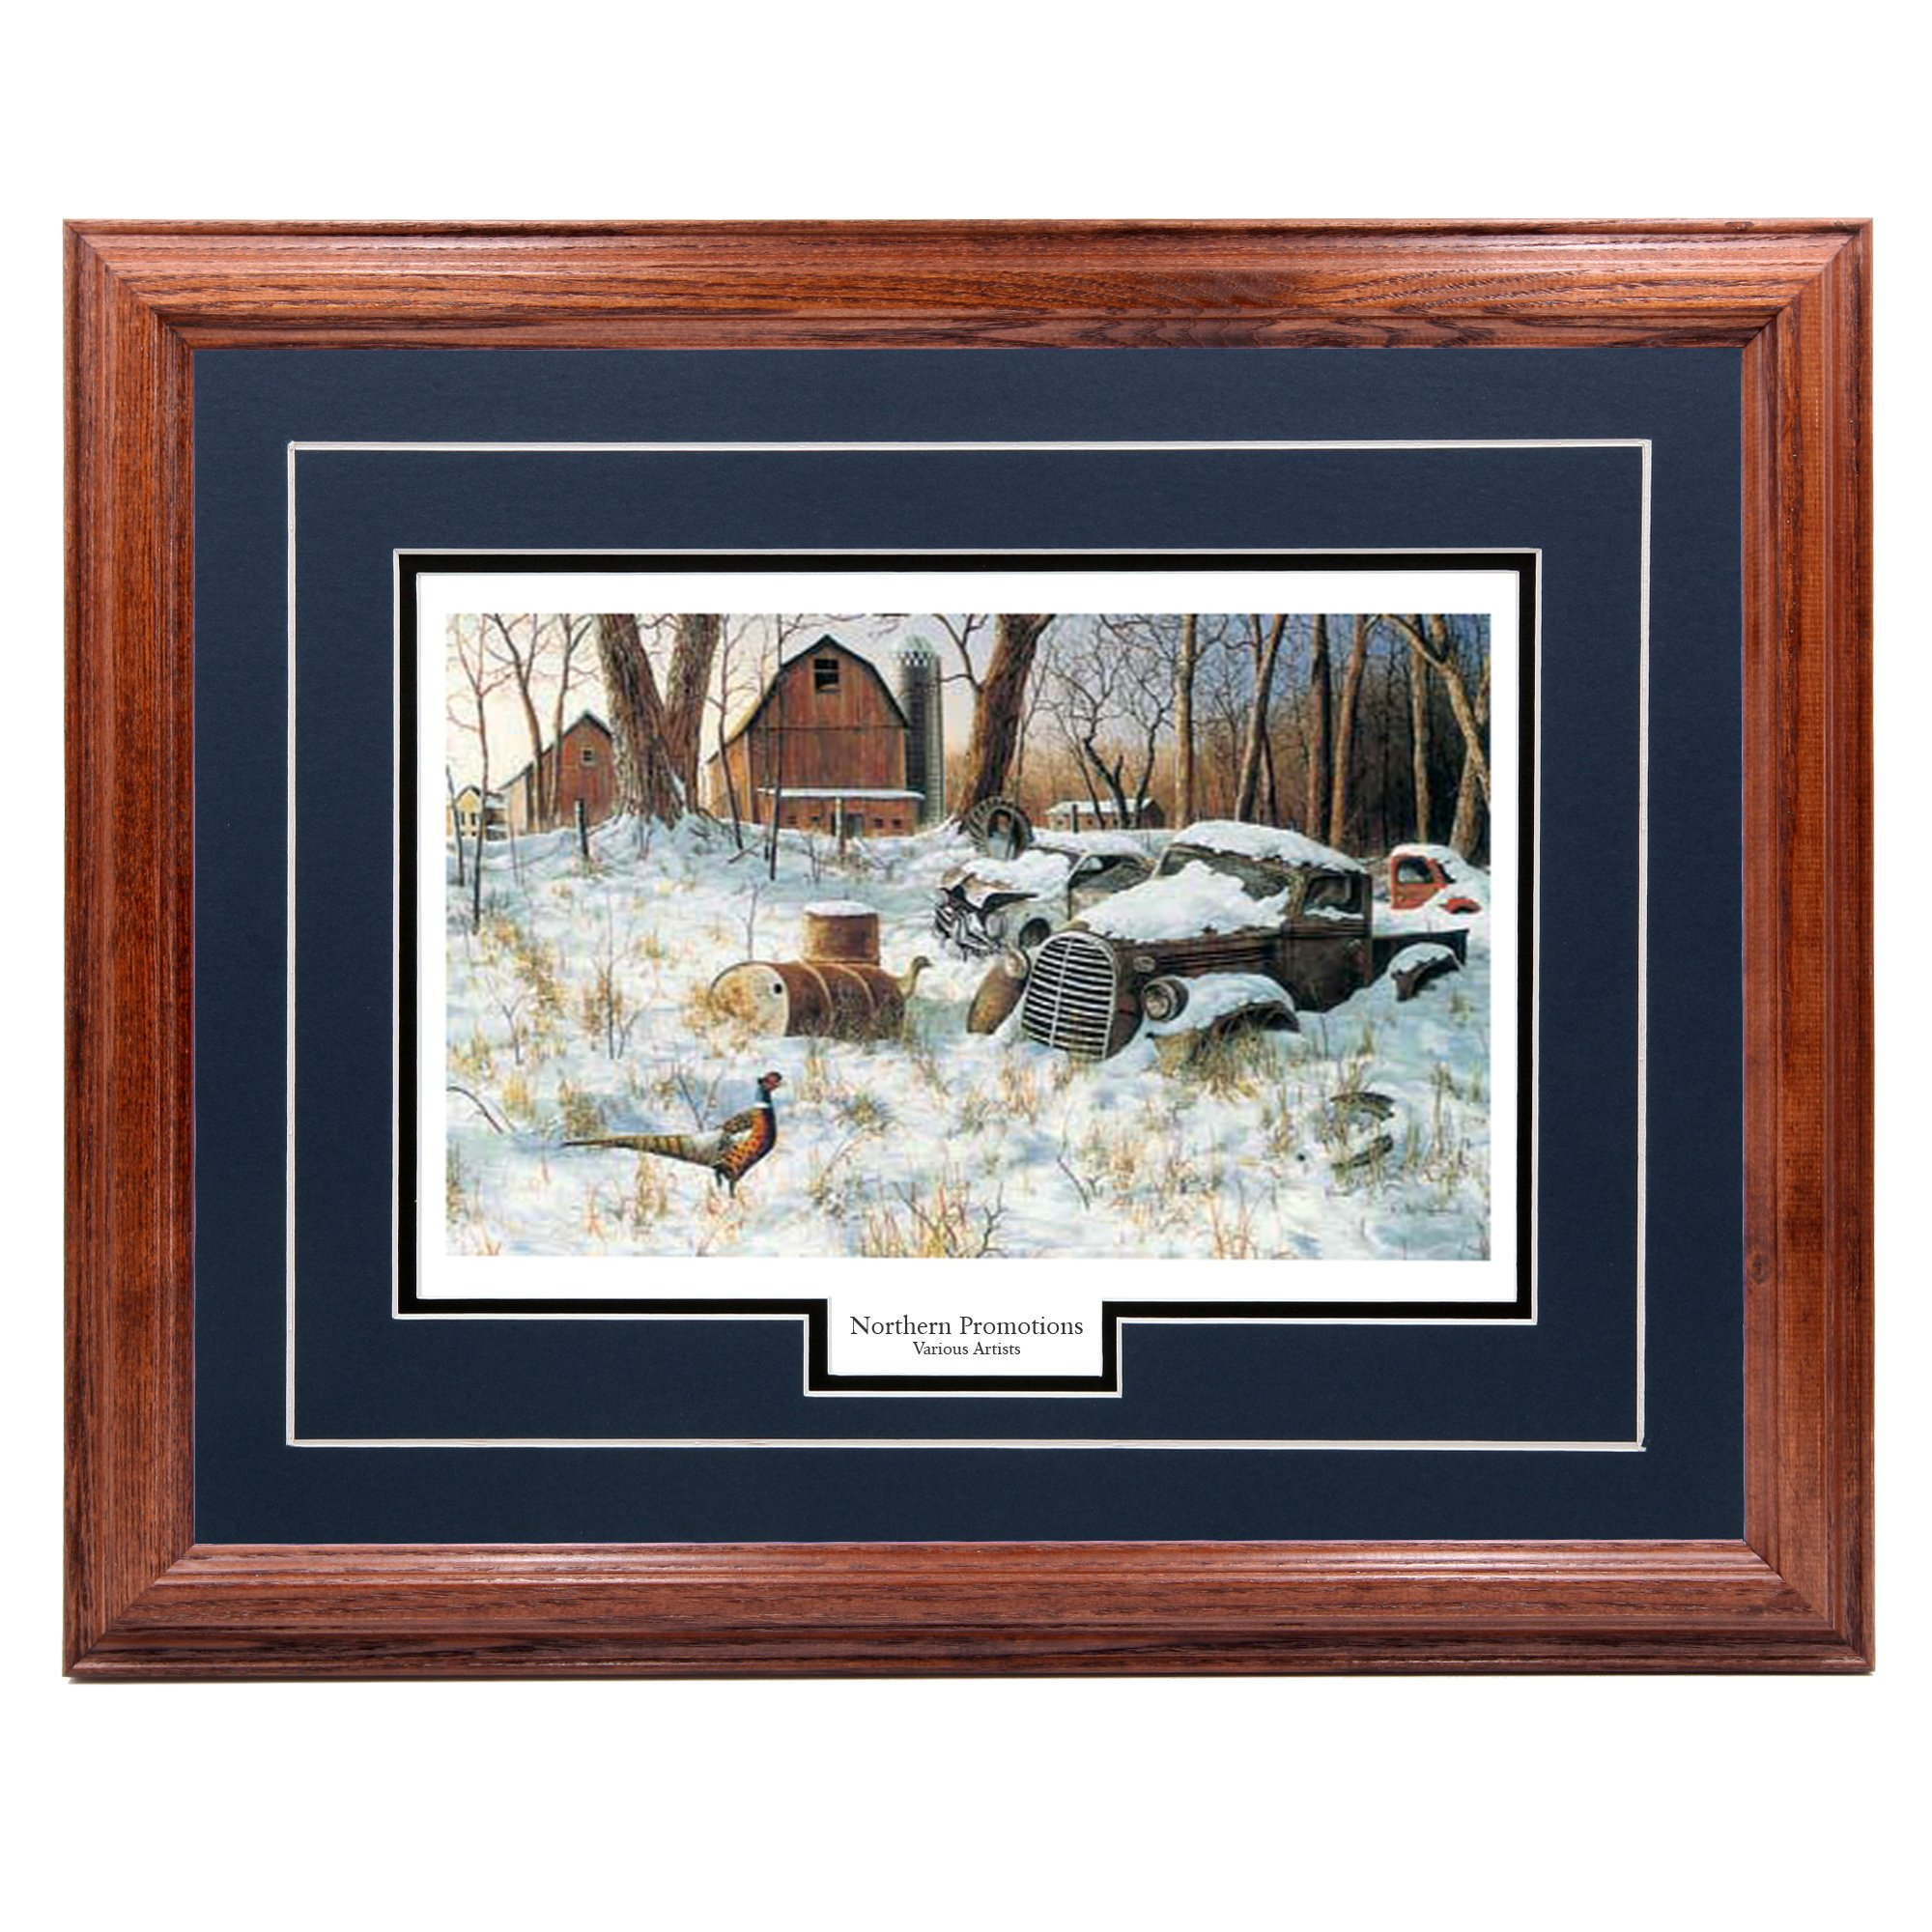 Northern Promotions, LLC. Winter Haven - Jim Hansel – Pheasant in Winter Classic Wall Art Print for Home/Office/Hotel/Cabin/Gift, 17 x 21 in, Blue Mat/Dark Oak Frame – More Frames Available